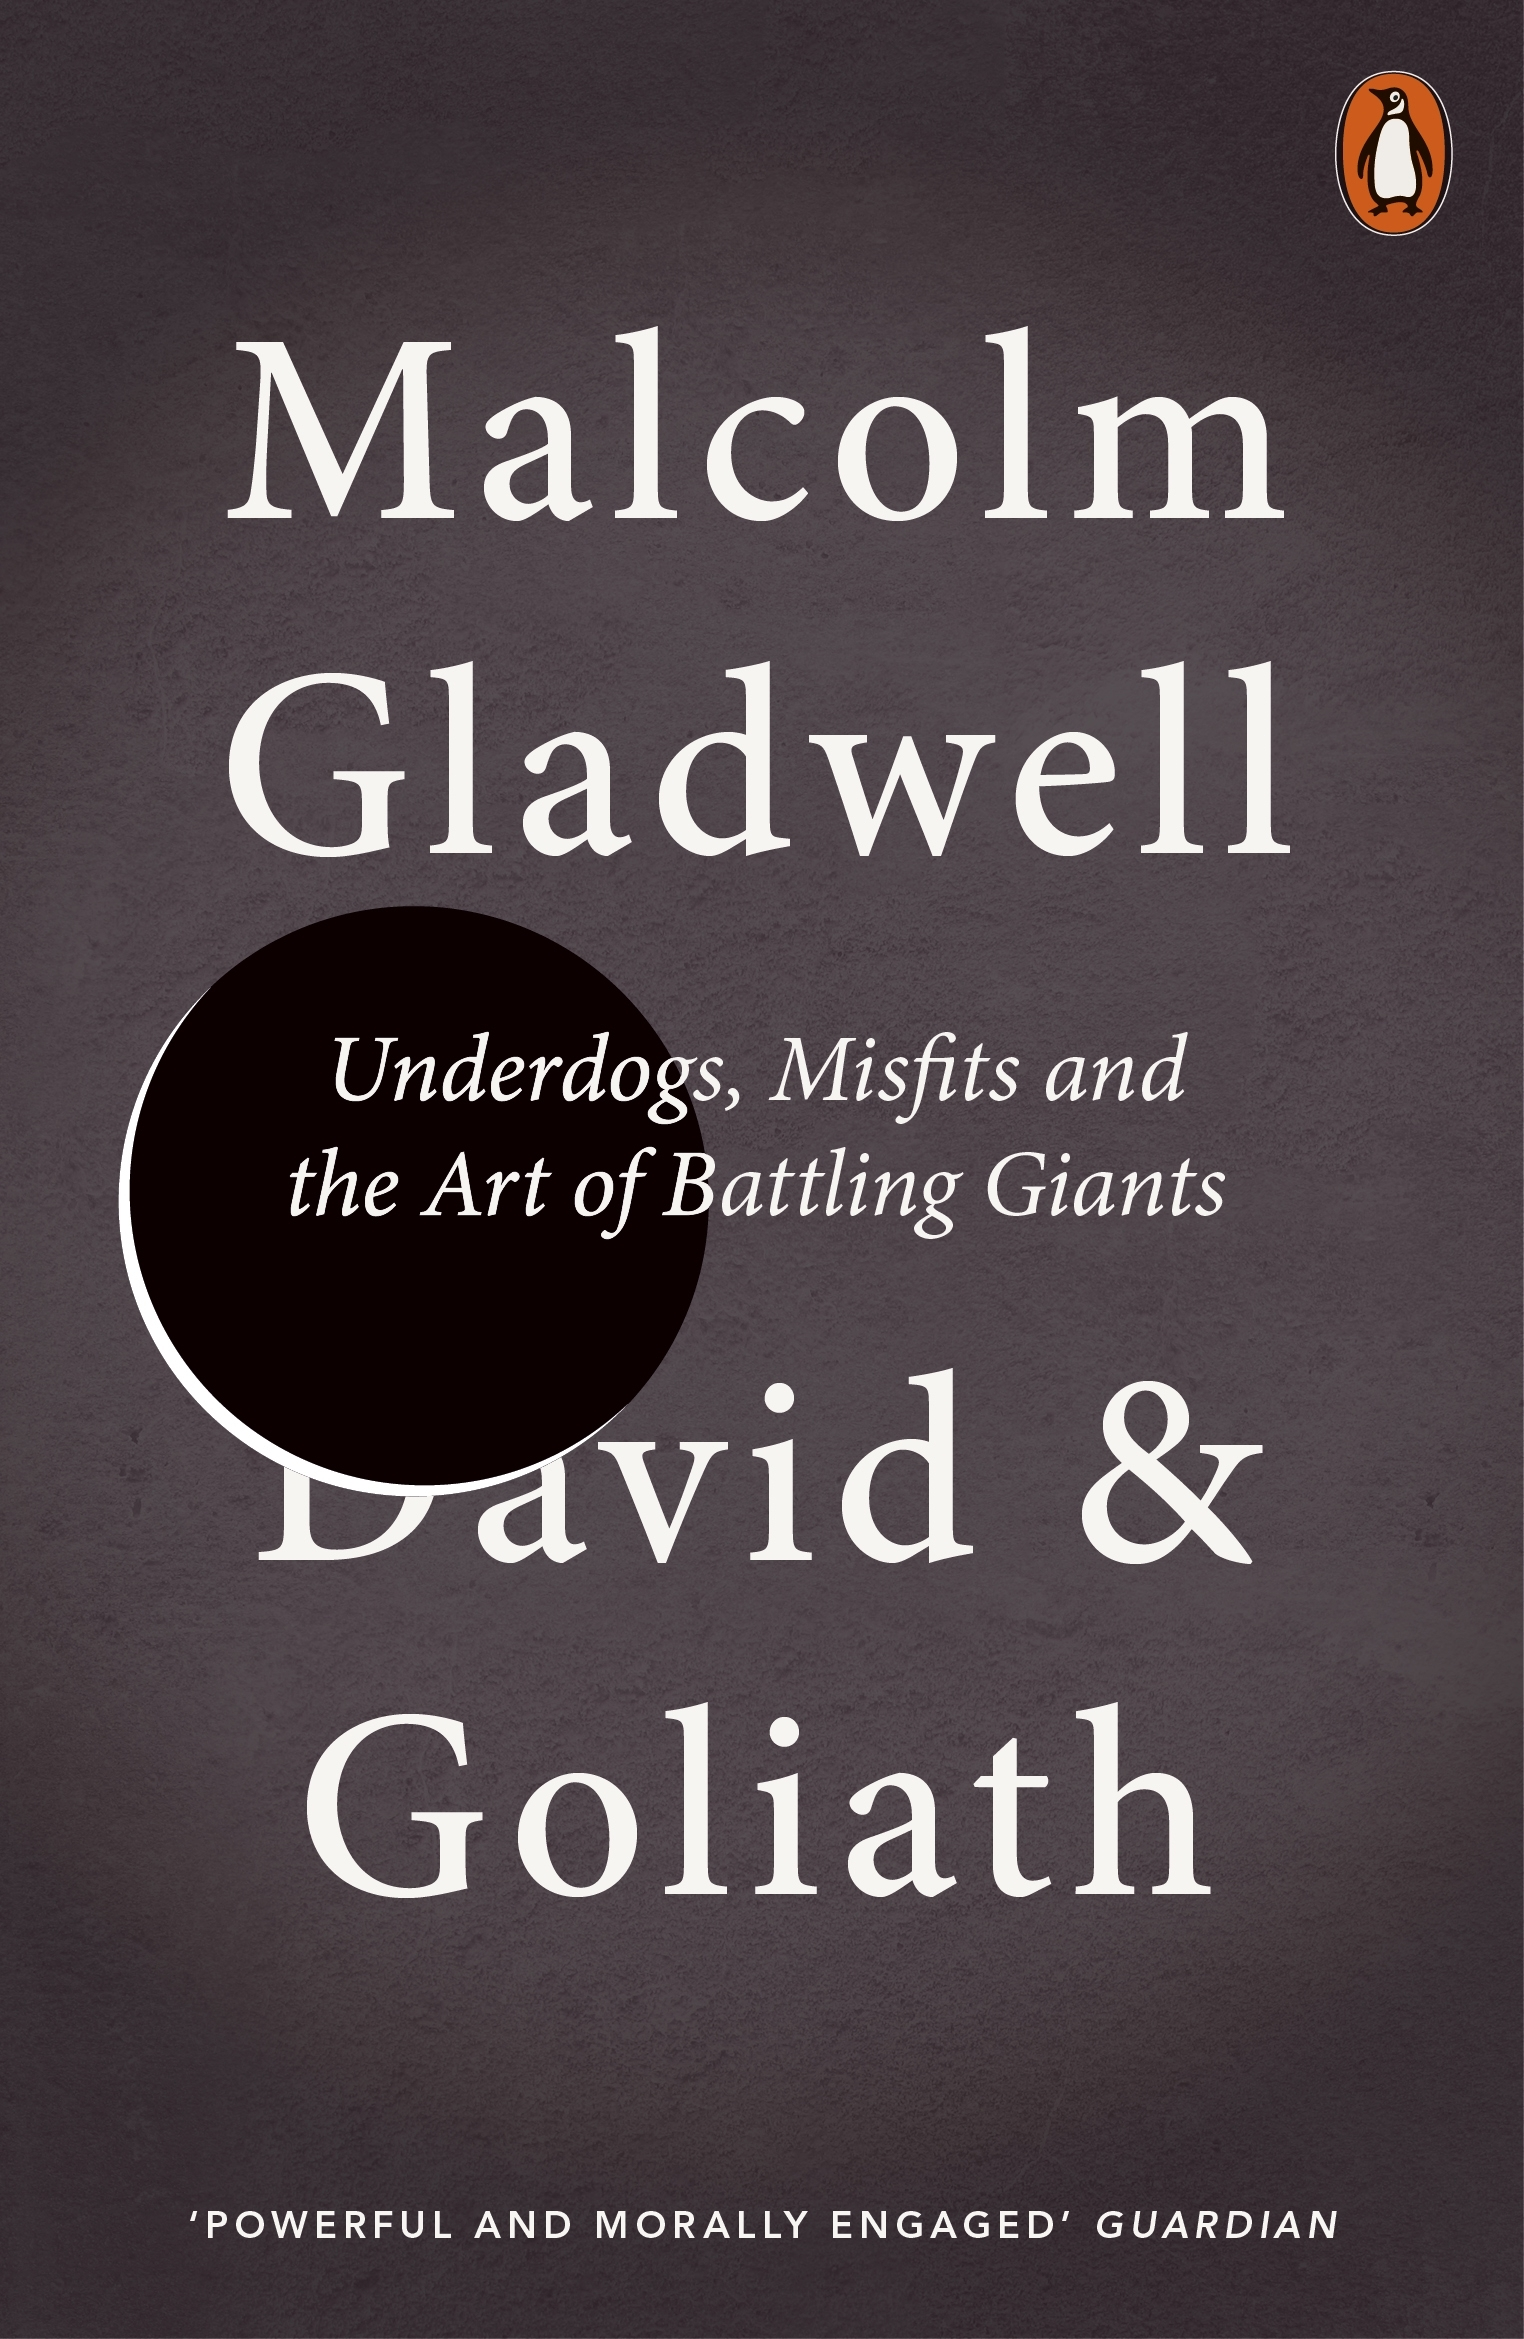 Download Ebook David and Goliath by Malcolm Gladwell Pdf